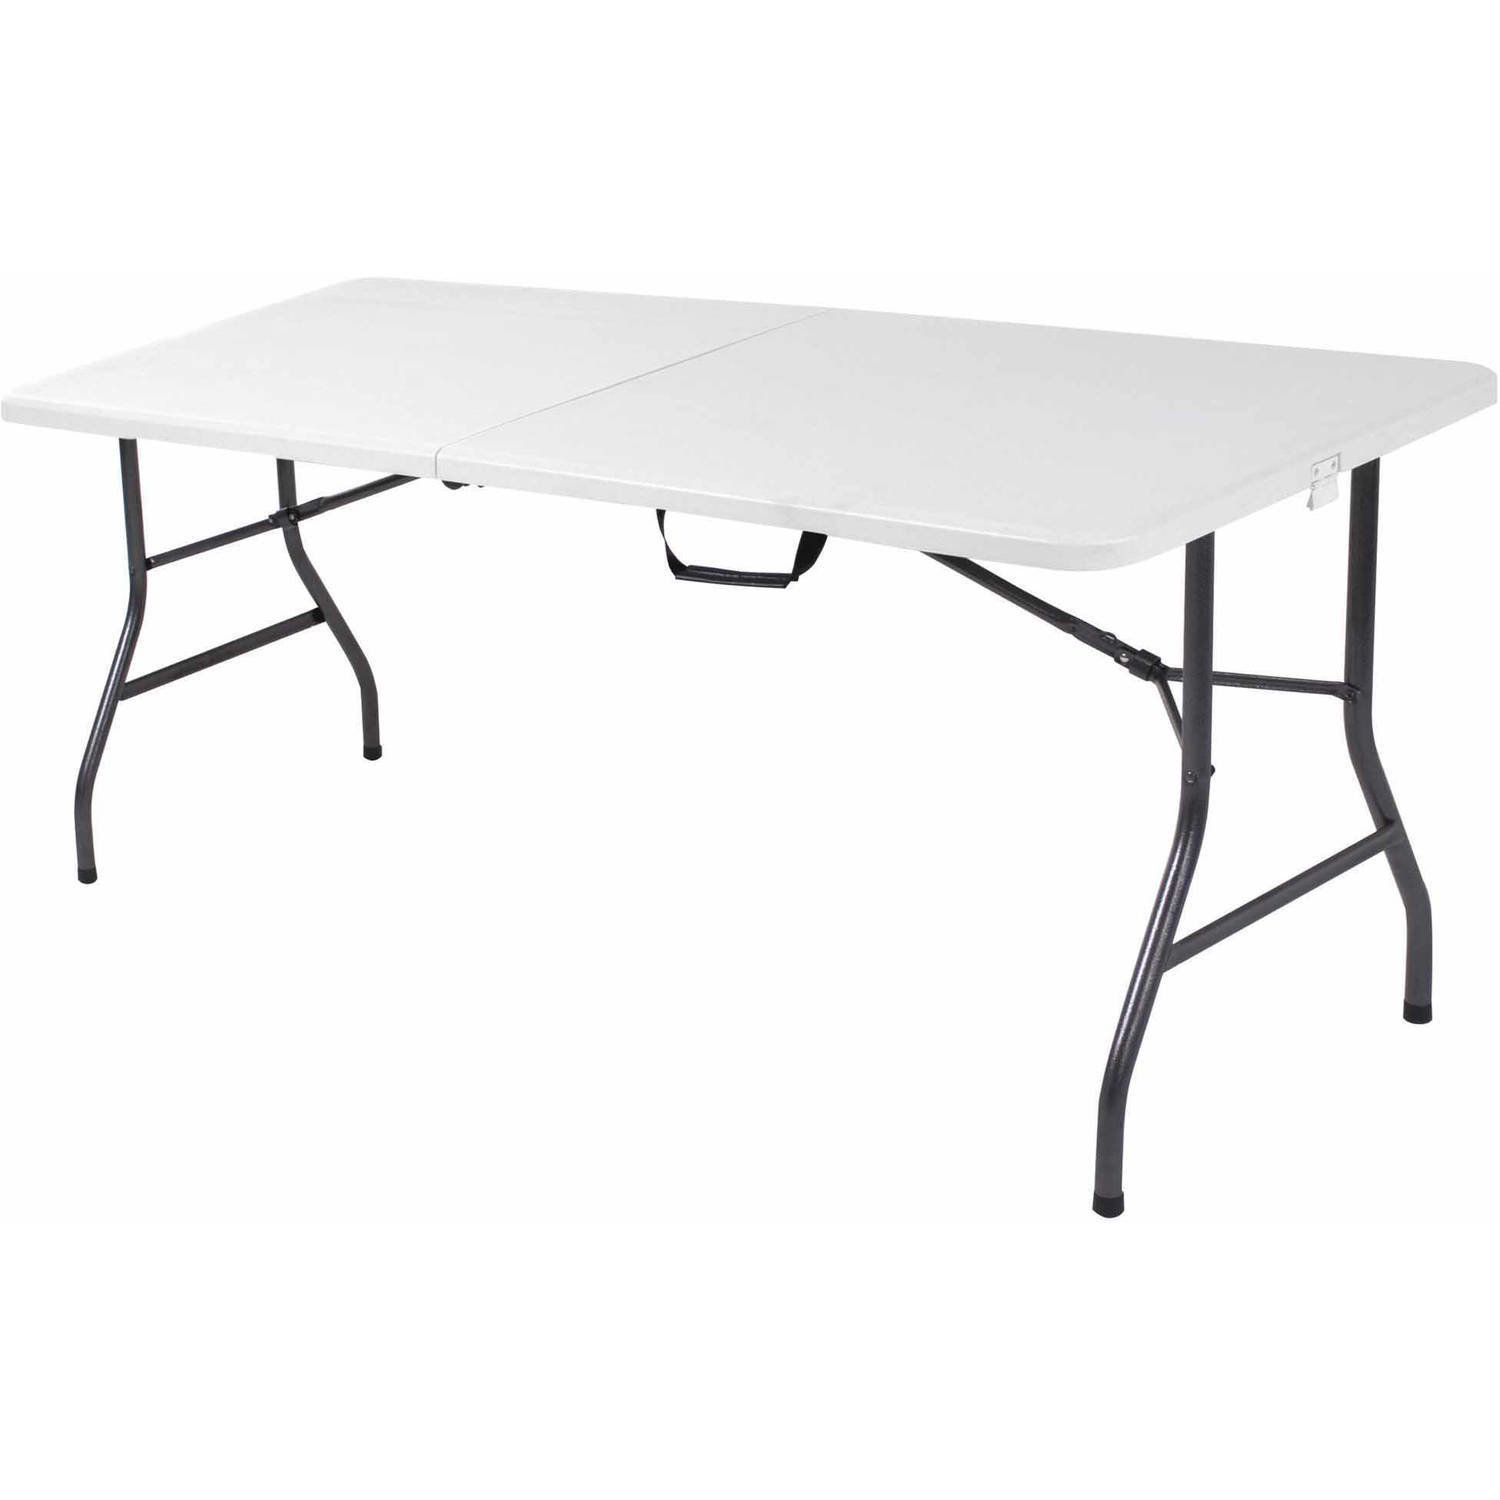 Table for Rent 00001